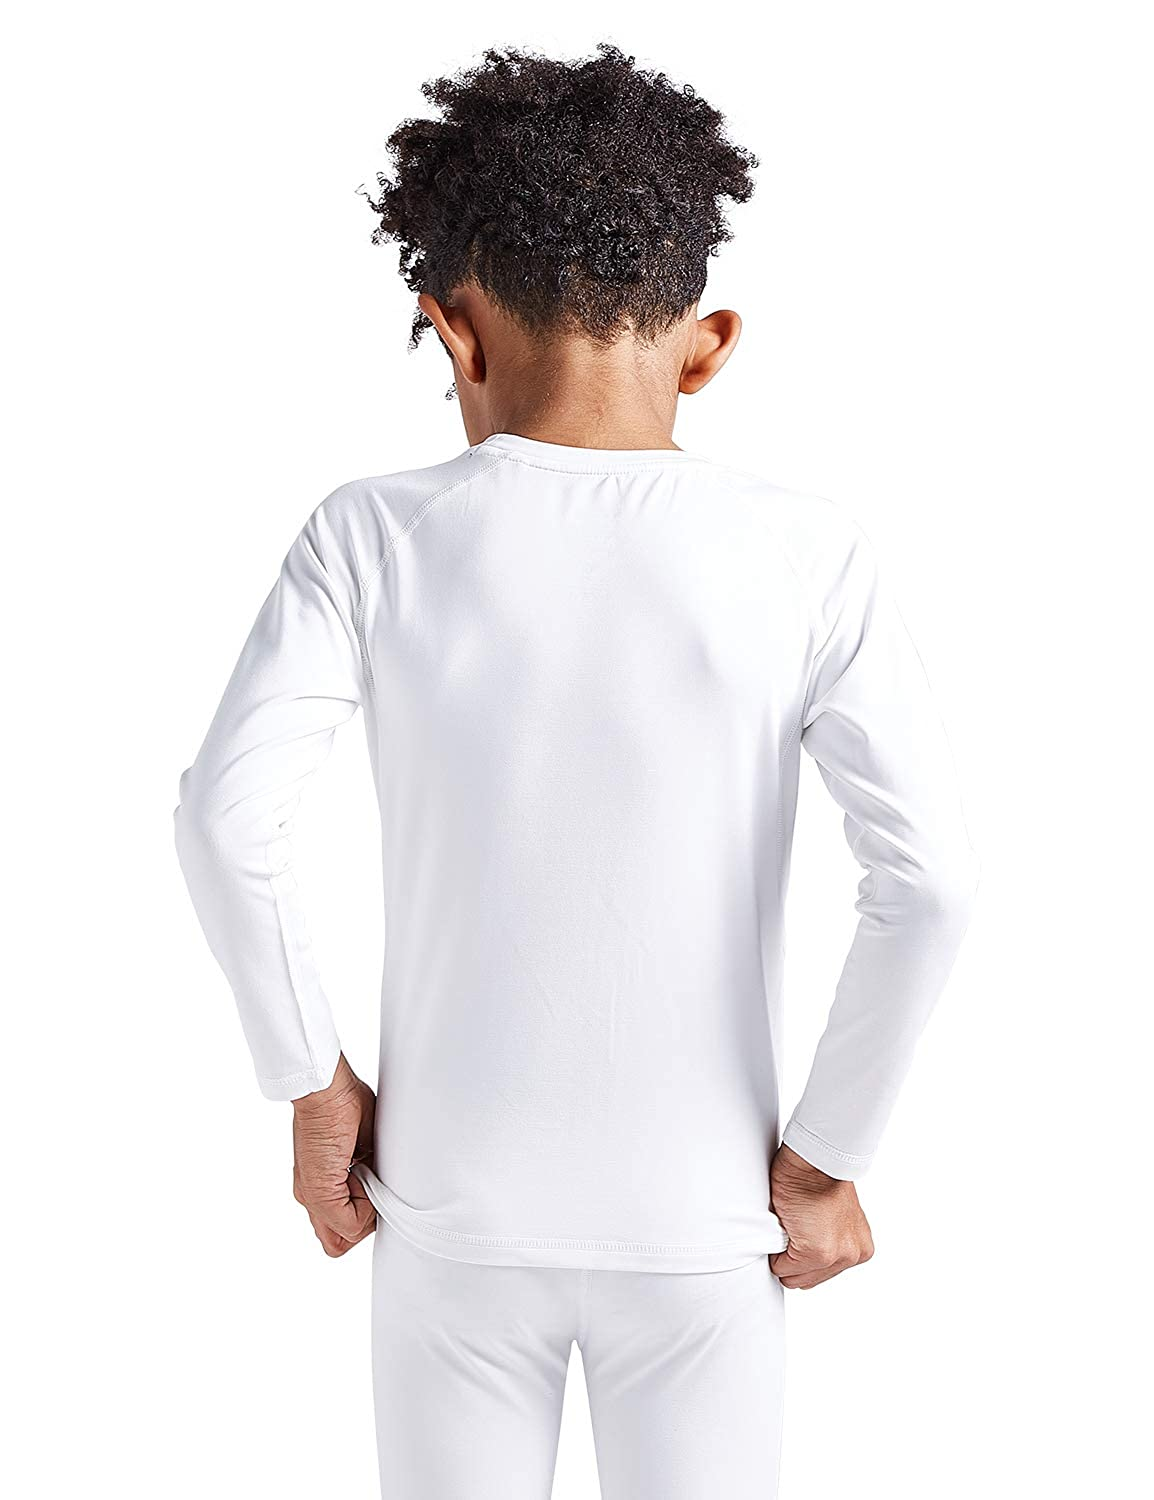 COOLOMG Boys Girls Thermal Long Sleeve Compression Shirts Fleece Lined Base Layer Tops Soccer Hockey Sport